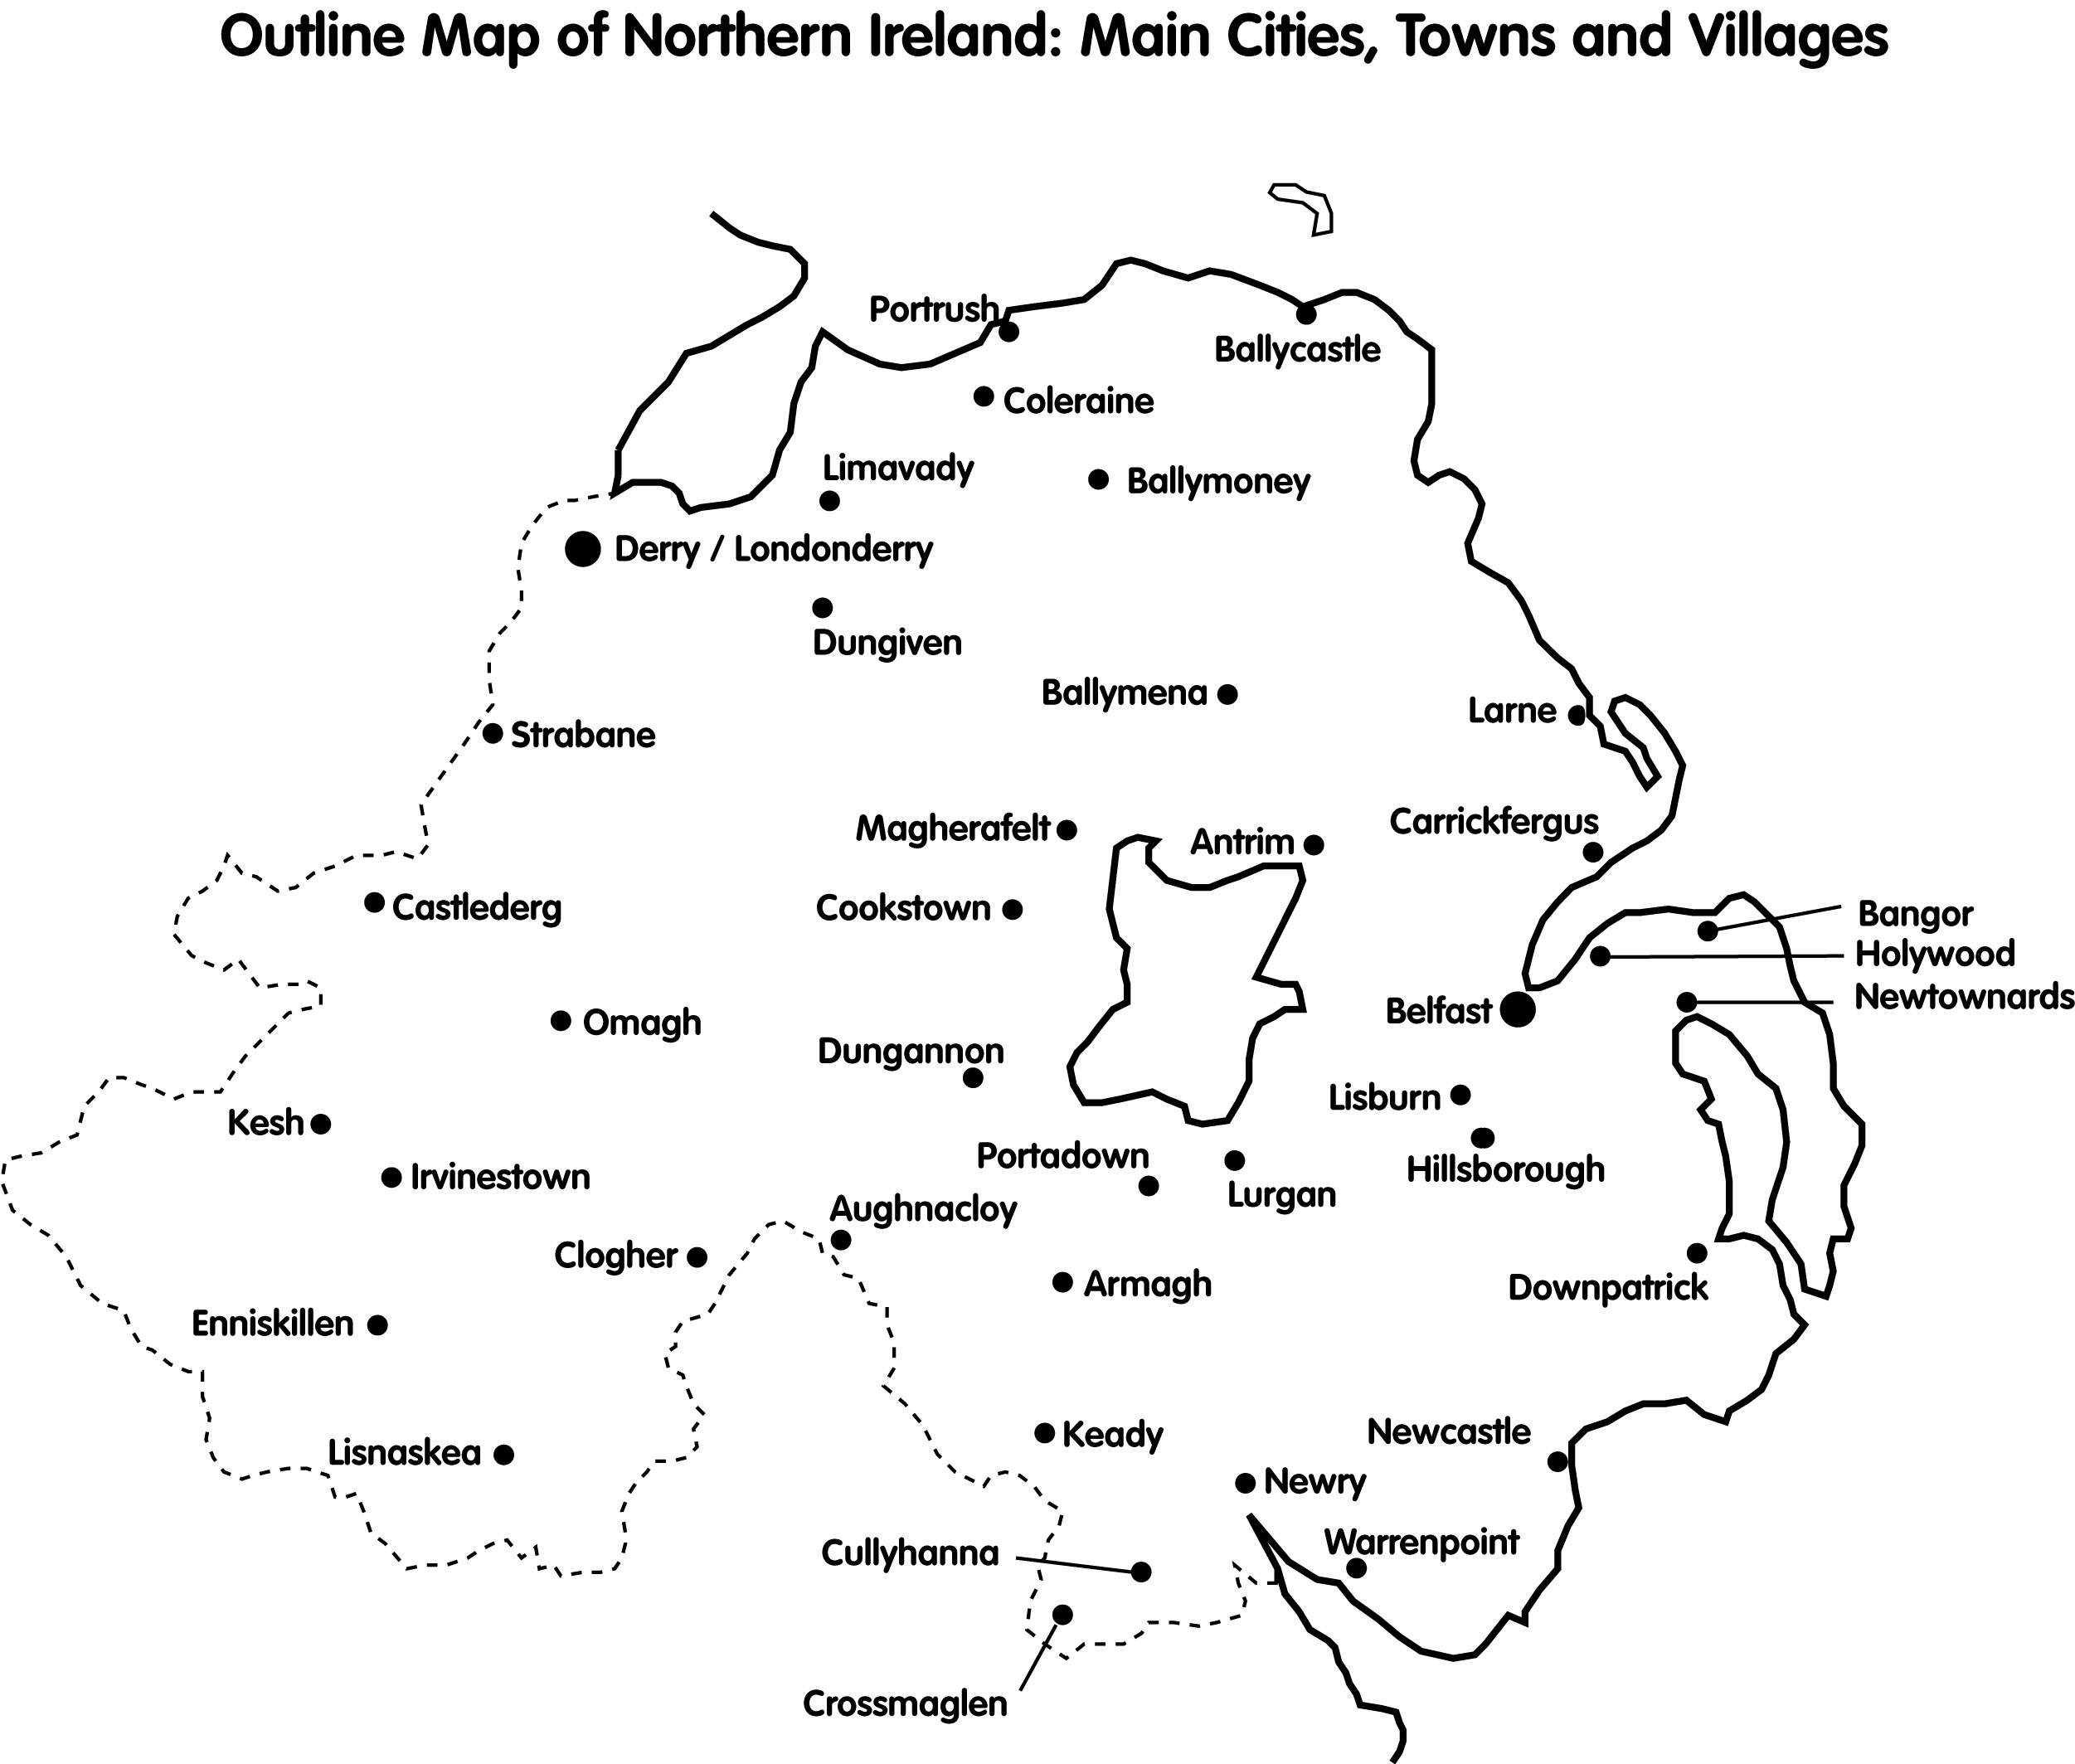 Map Of Ireland With Towns And Counties.Cain Maps Outline Map Of Northern Ireland Main Cities Towns